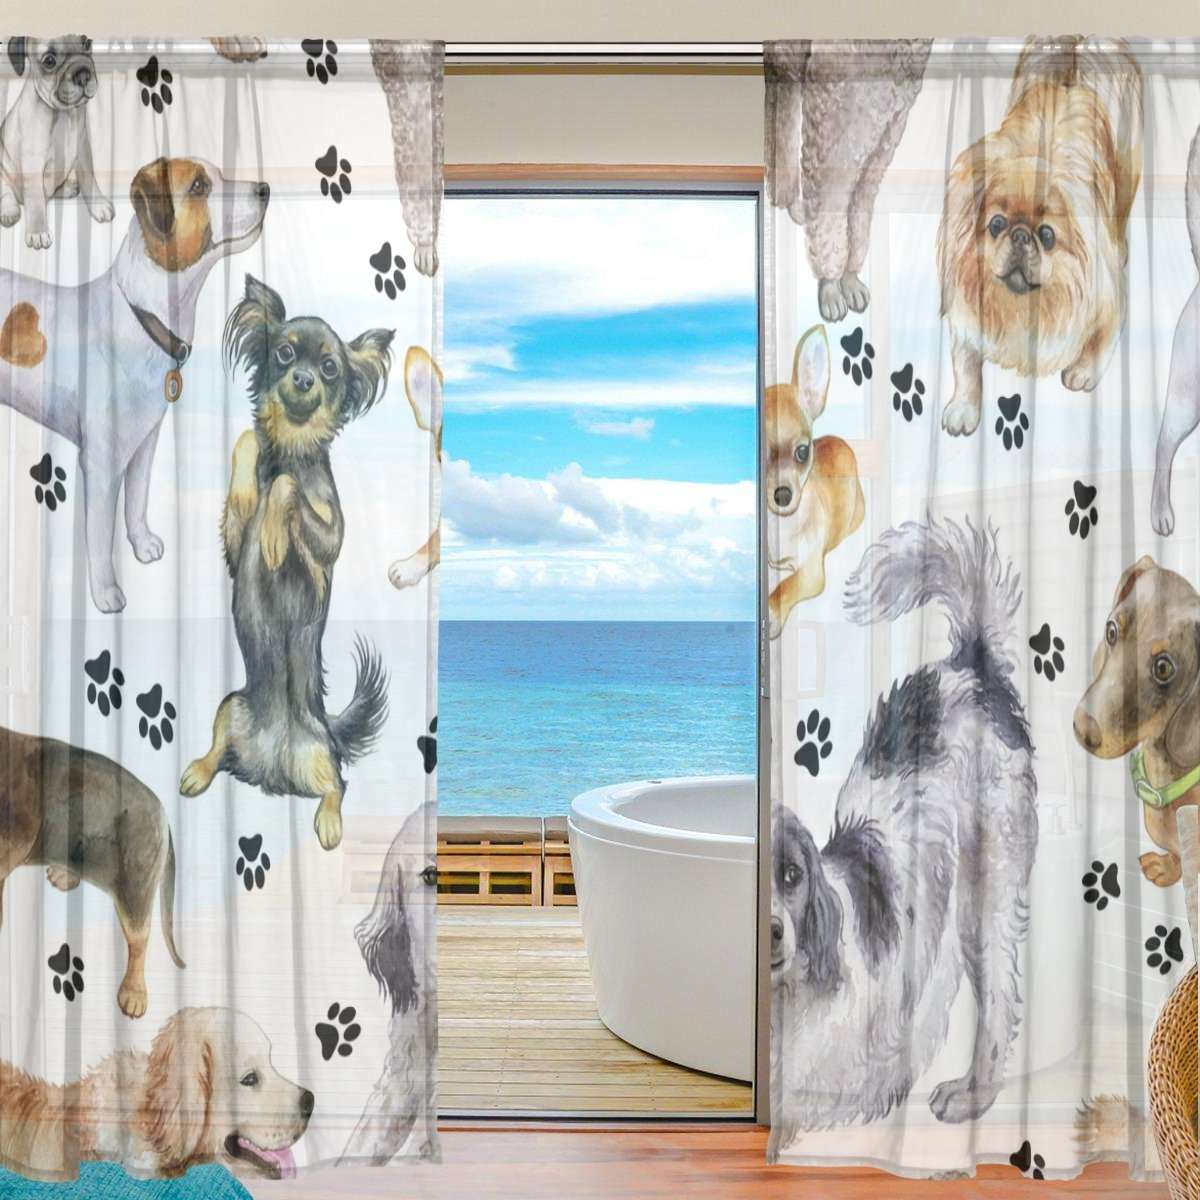 SEULIFE Window Sheer Curtain, Cute Animal Dog Paw Print Black Voile Curtain Drapes for Door Kitchen Living Room Bedroom 55x78 inches 2 Panels by SEULIFE